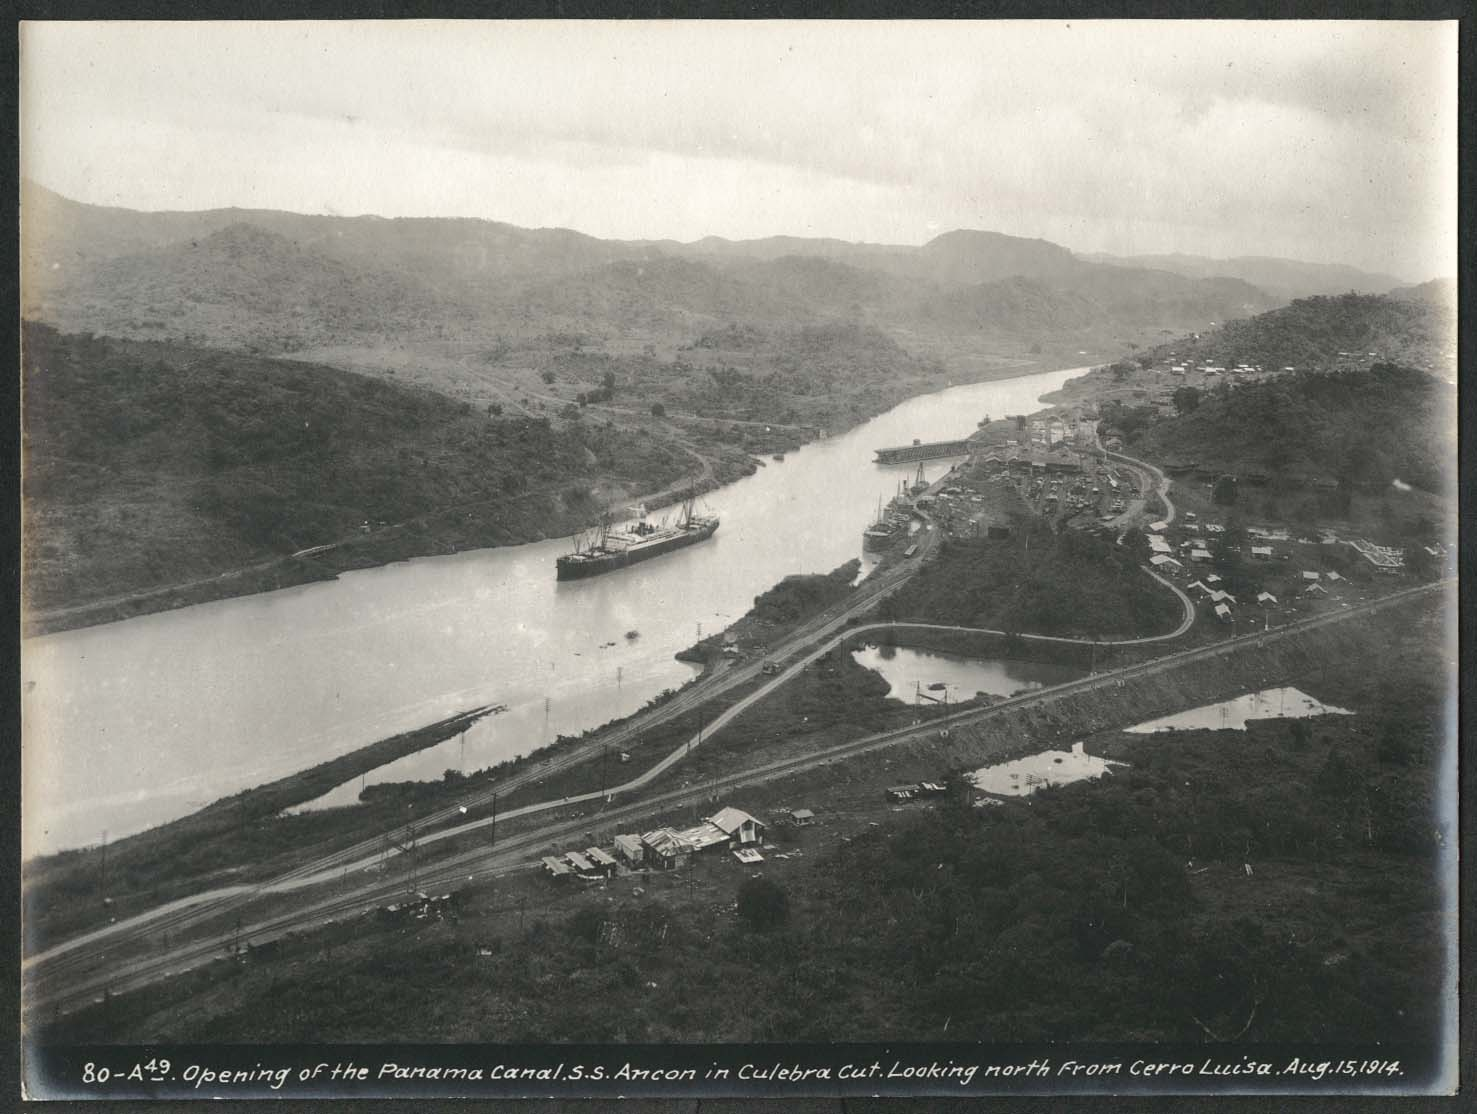 Image for Panama Canal photo 1914 Opening of canal S S Ancon Culebra Cut from Cerrio Luisa